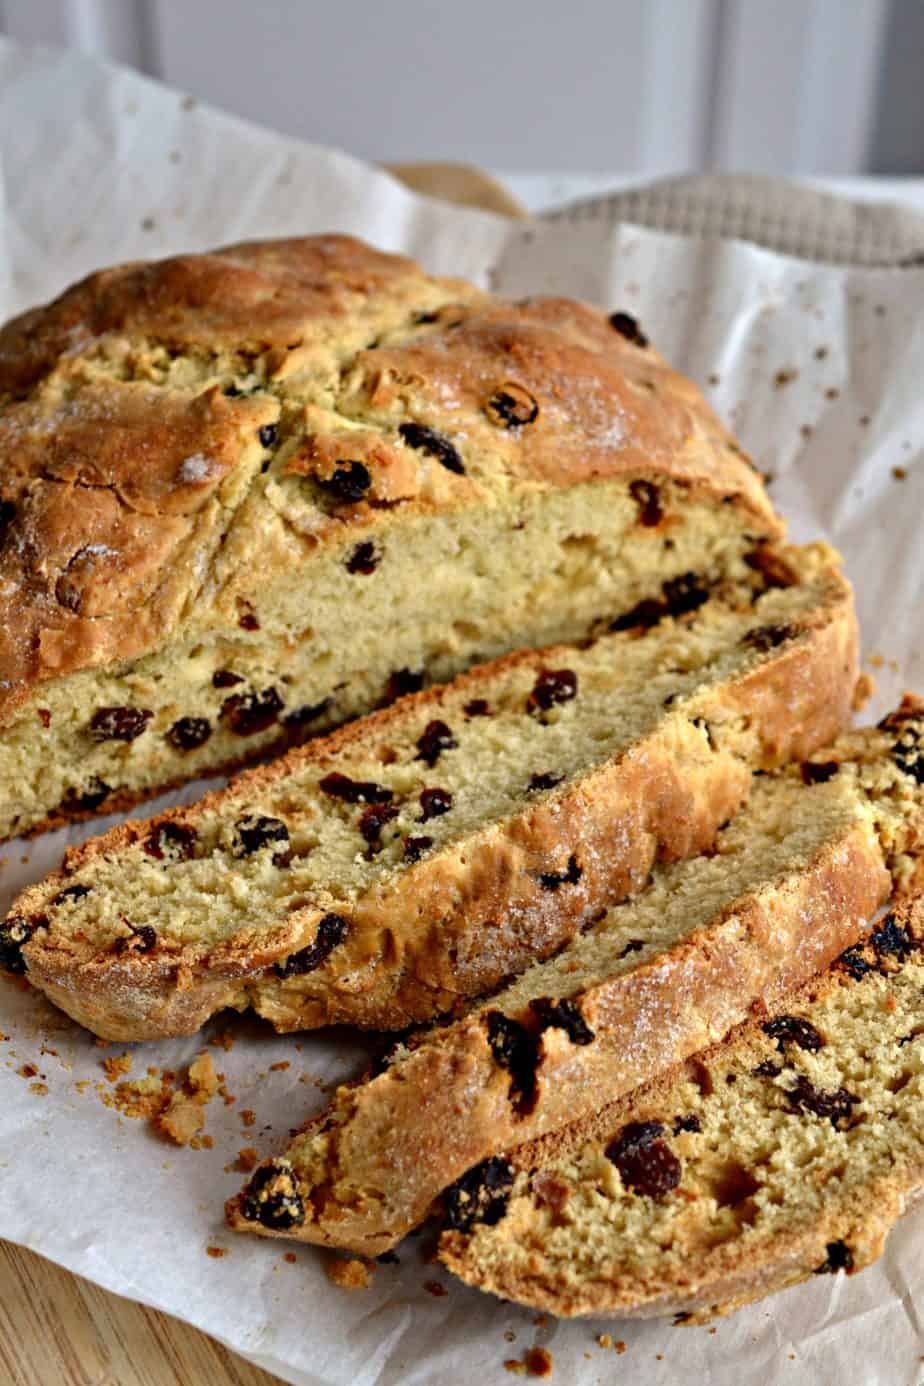 This easy no yeast Irish Soda Bread has a crispy crust yet soft and slightly sweet on the inside and is best served warm.